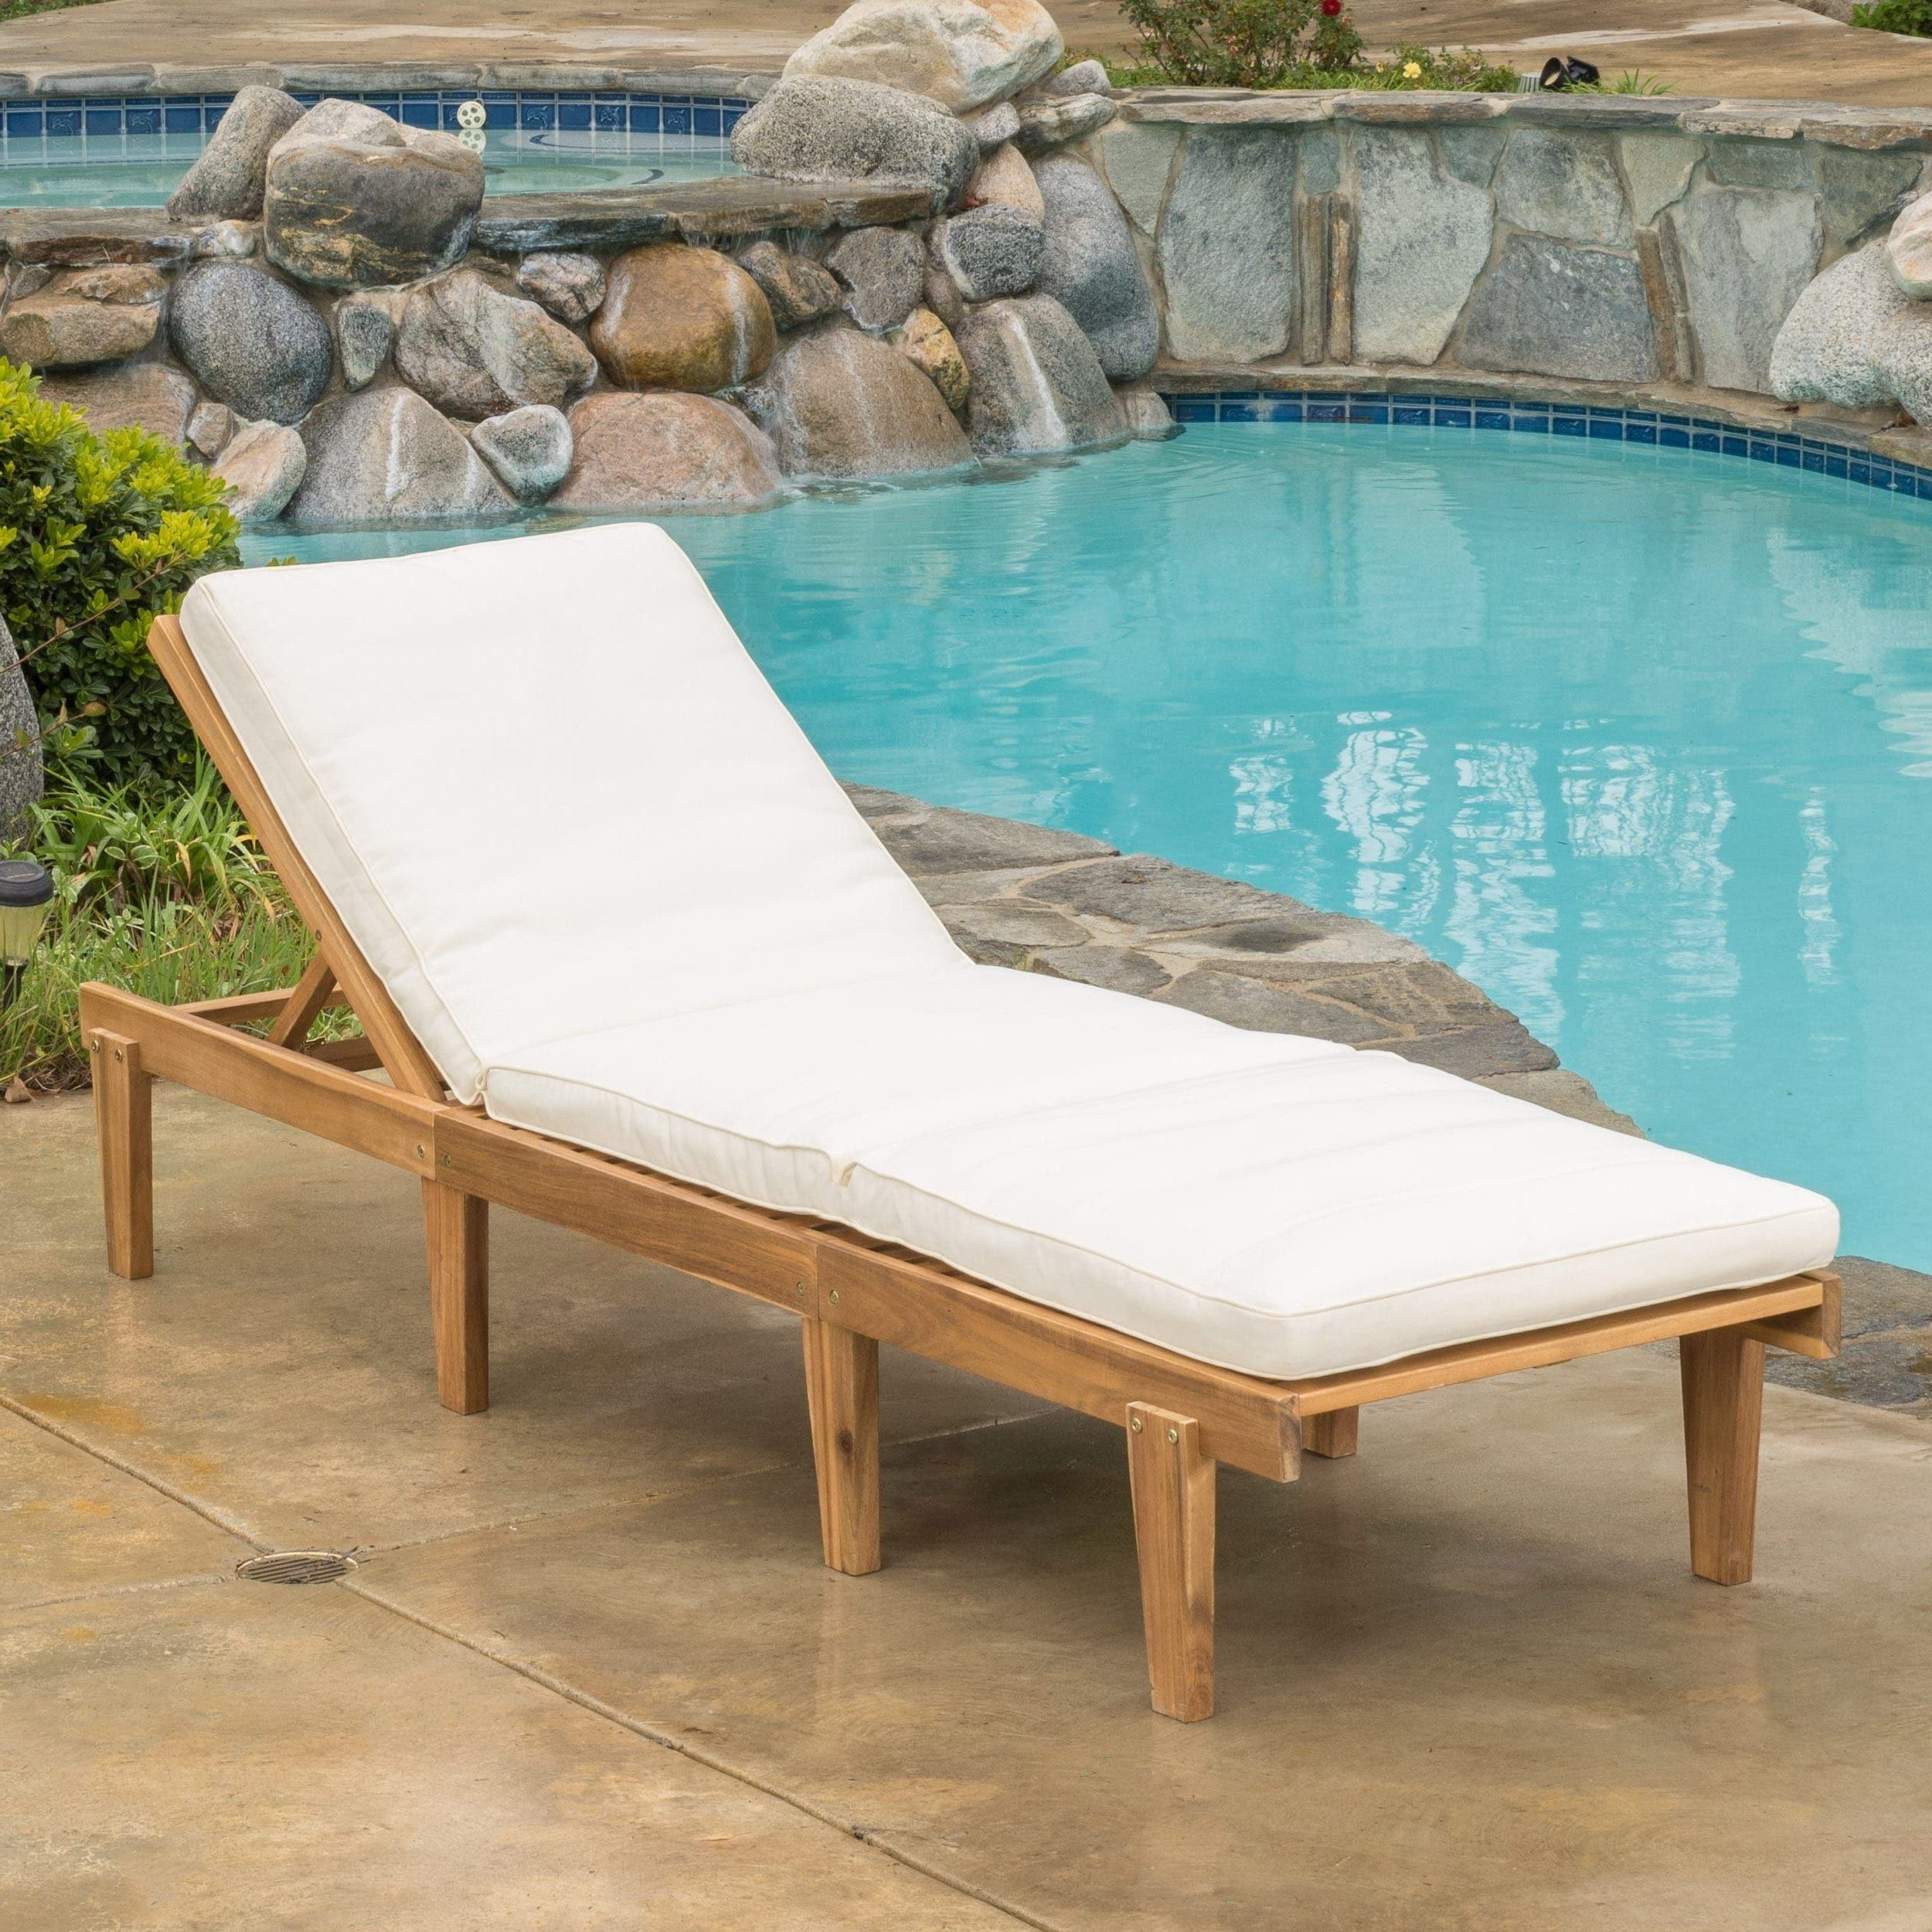 Ariana Acacia Outdoor Wood Chaise Lounge With Cushion Intended For Well Liked Wood Blue And White Cushion Outdoor Chaise Lounge Chairs (View 5 of 25)